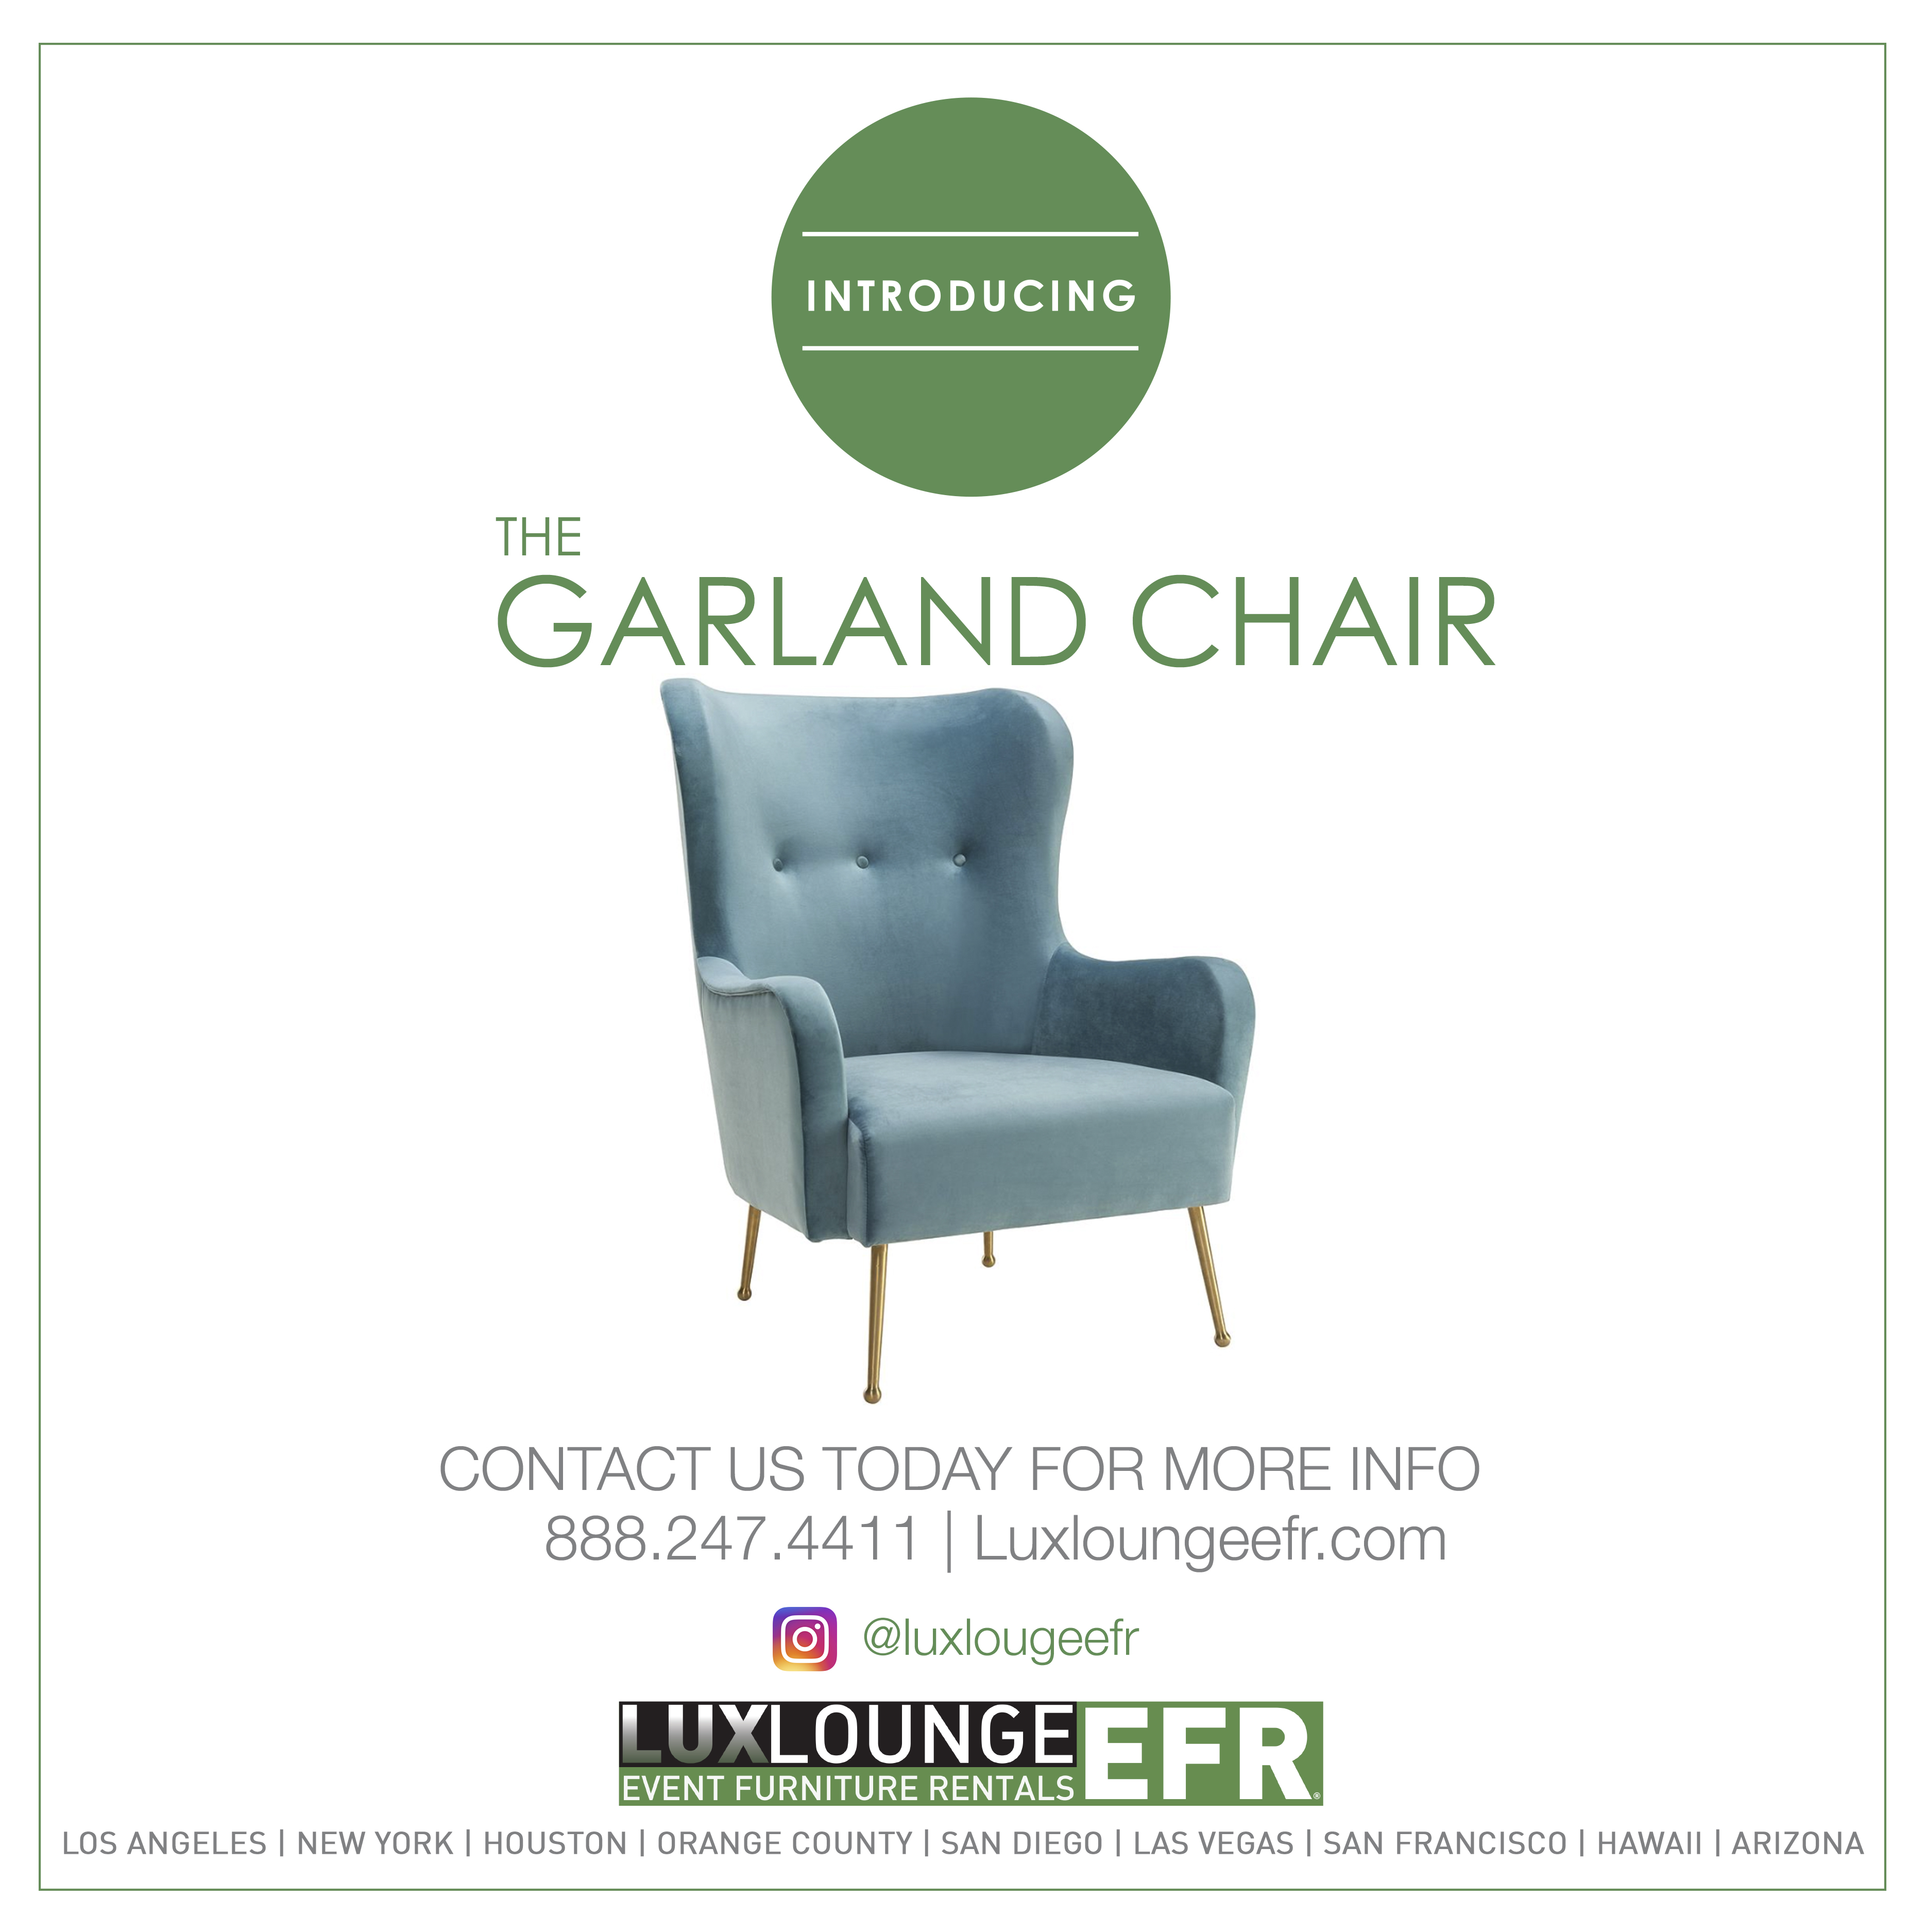 Strange Event Furniture Rental Orange County Lux Lounge Efr 888 Onthecornerstone Fun Painted Chair Ideas Images Onthecornerstoneorg